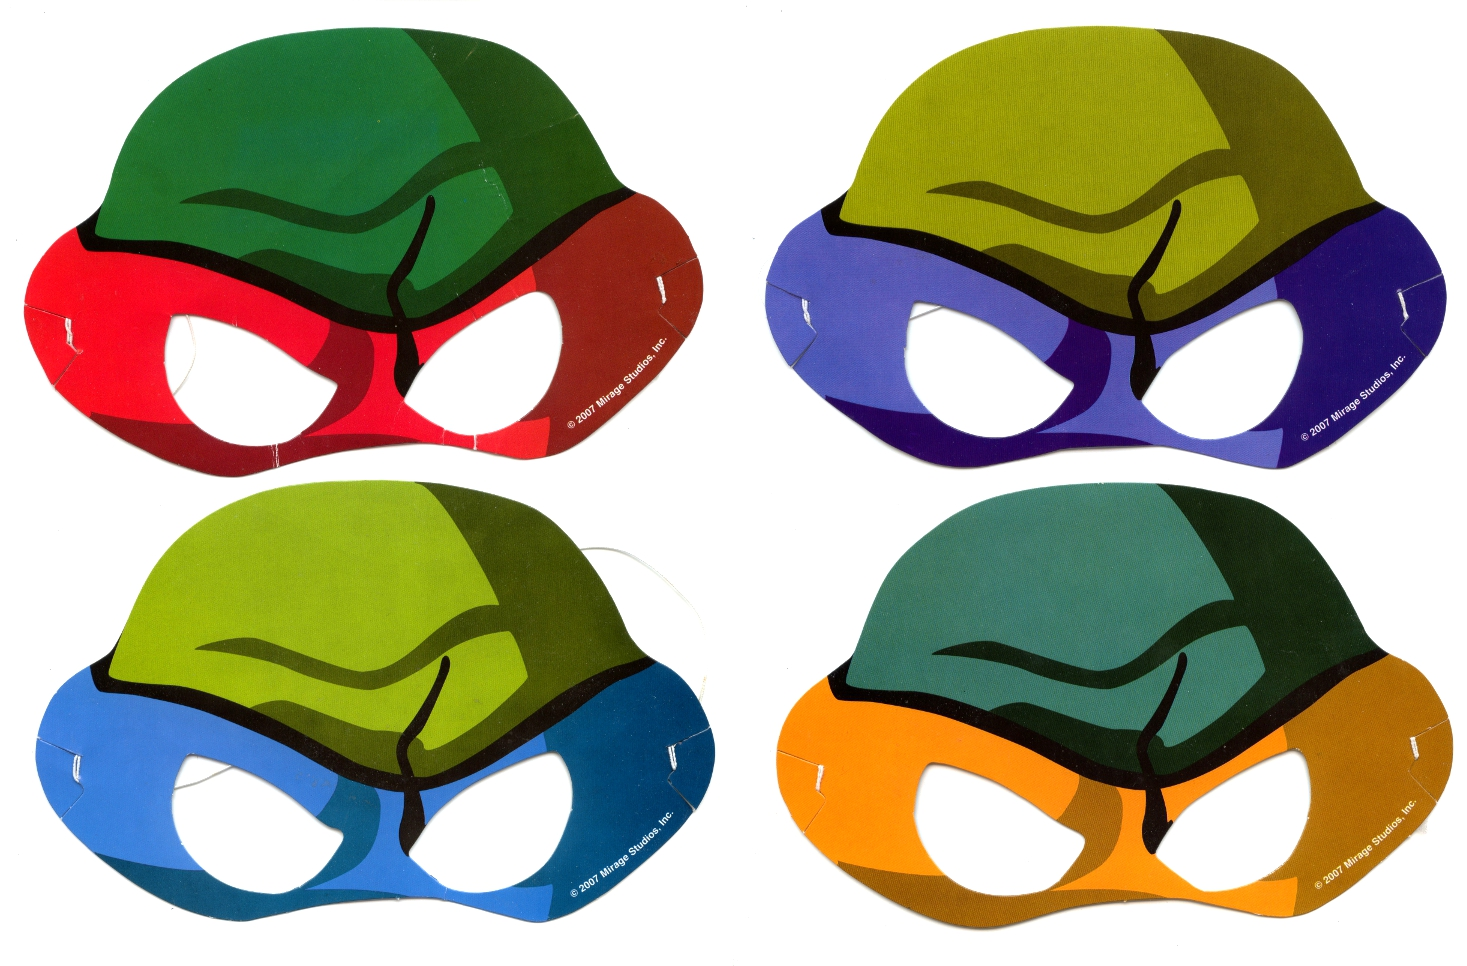 Teenage Mutant Ninja Turtles Mask Template http://squer-tmnt.blogspot.com/2011_11_01_archive.html